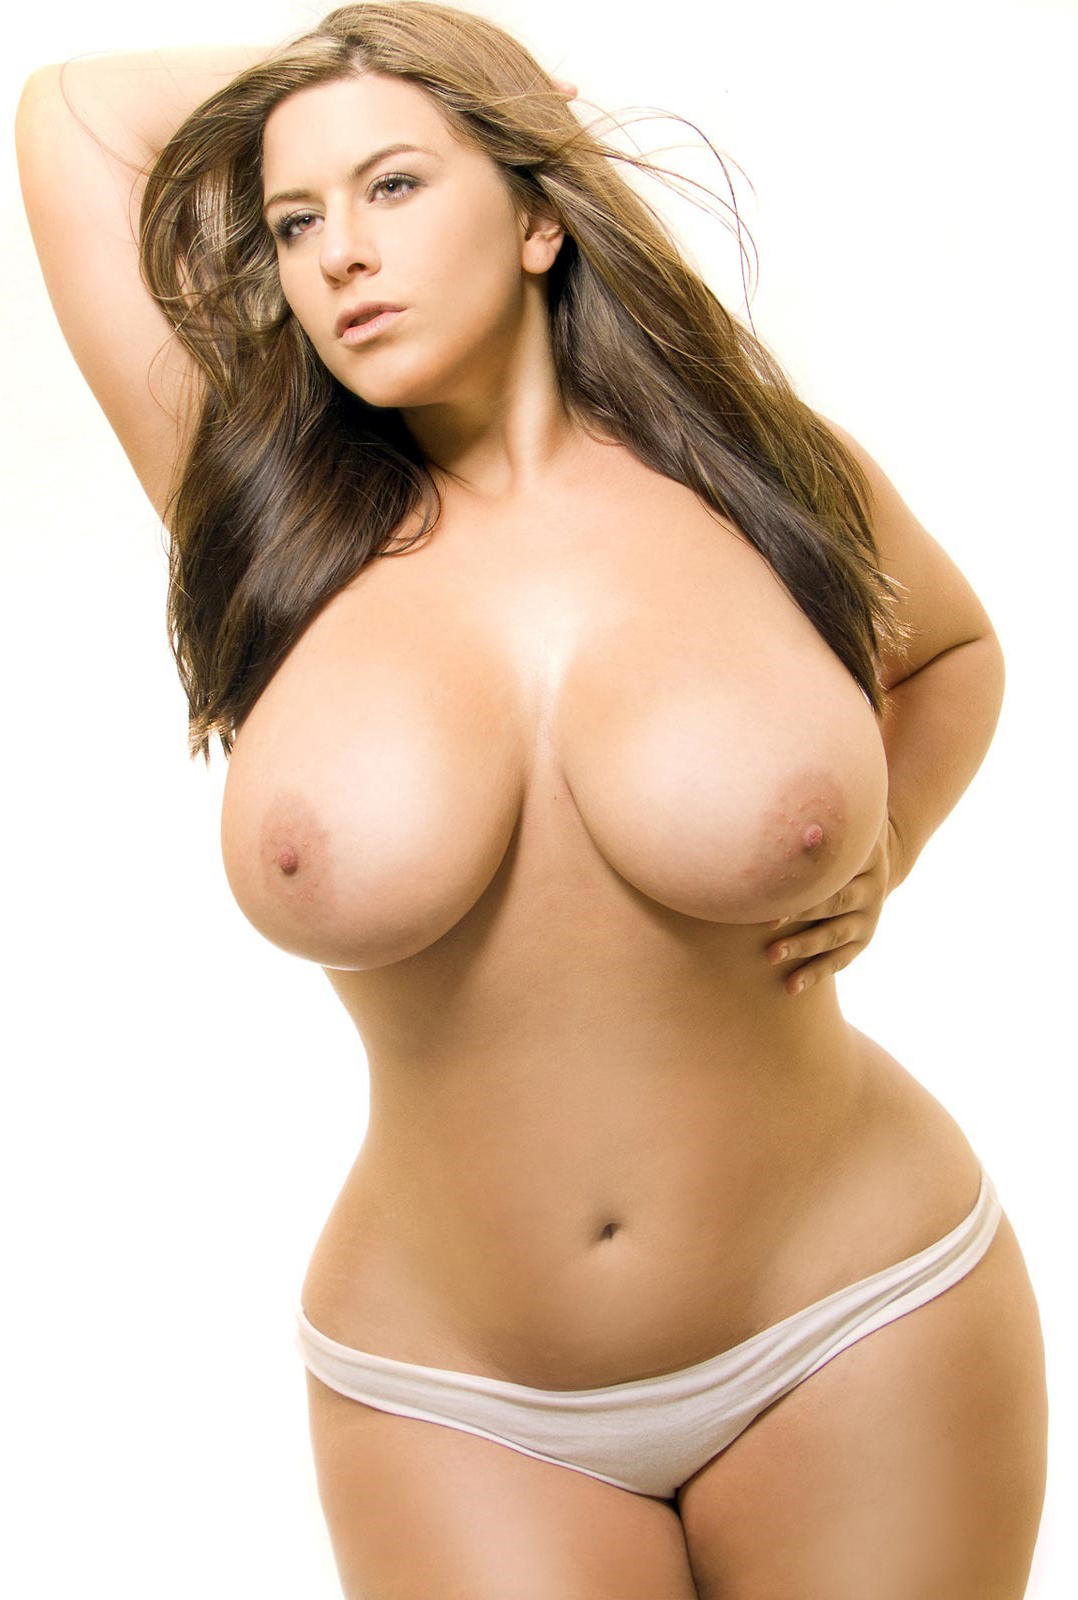 naked-women-with-big-hips-a-big-breasts